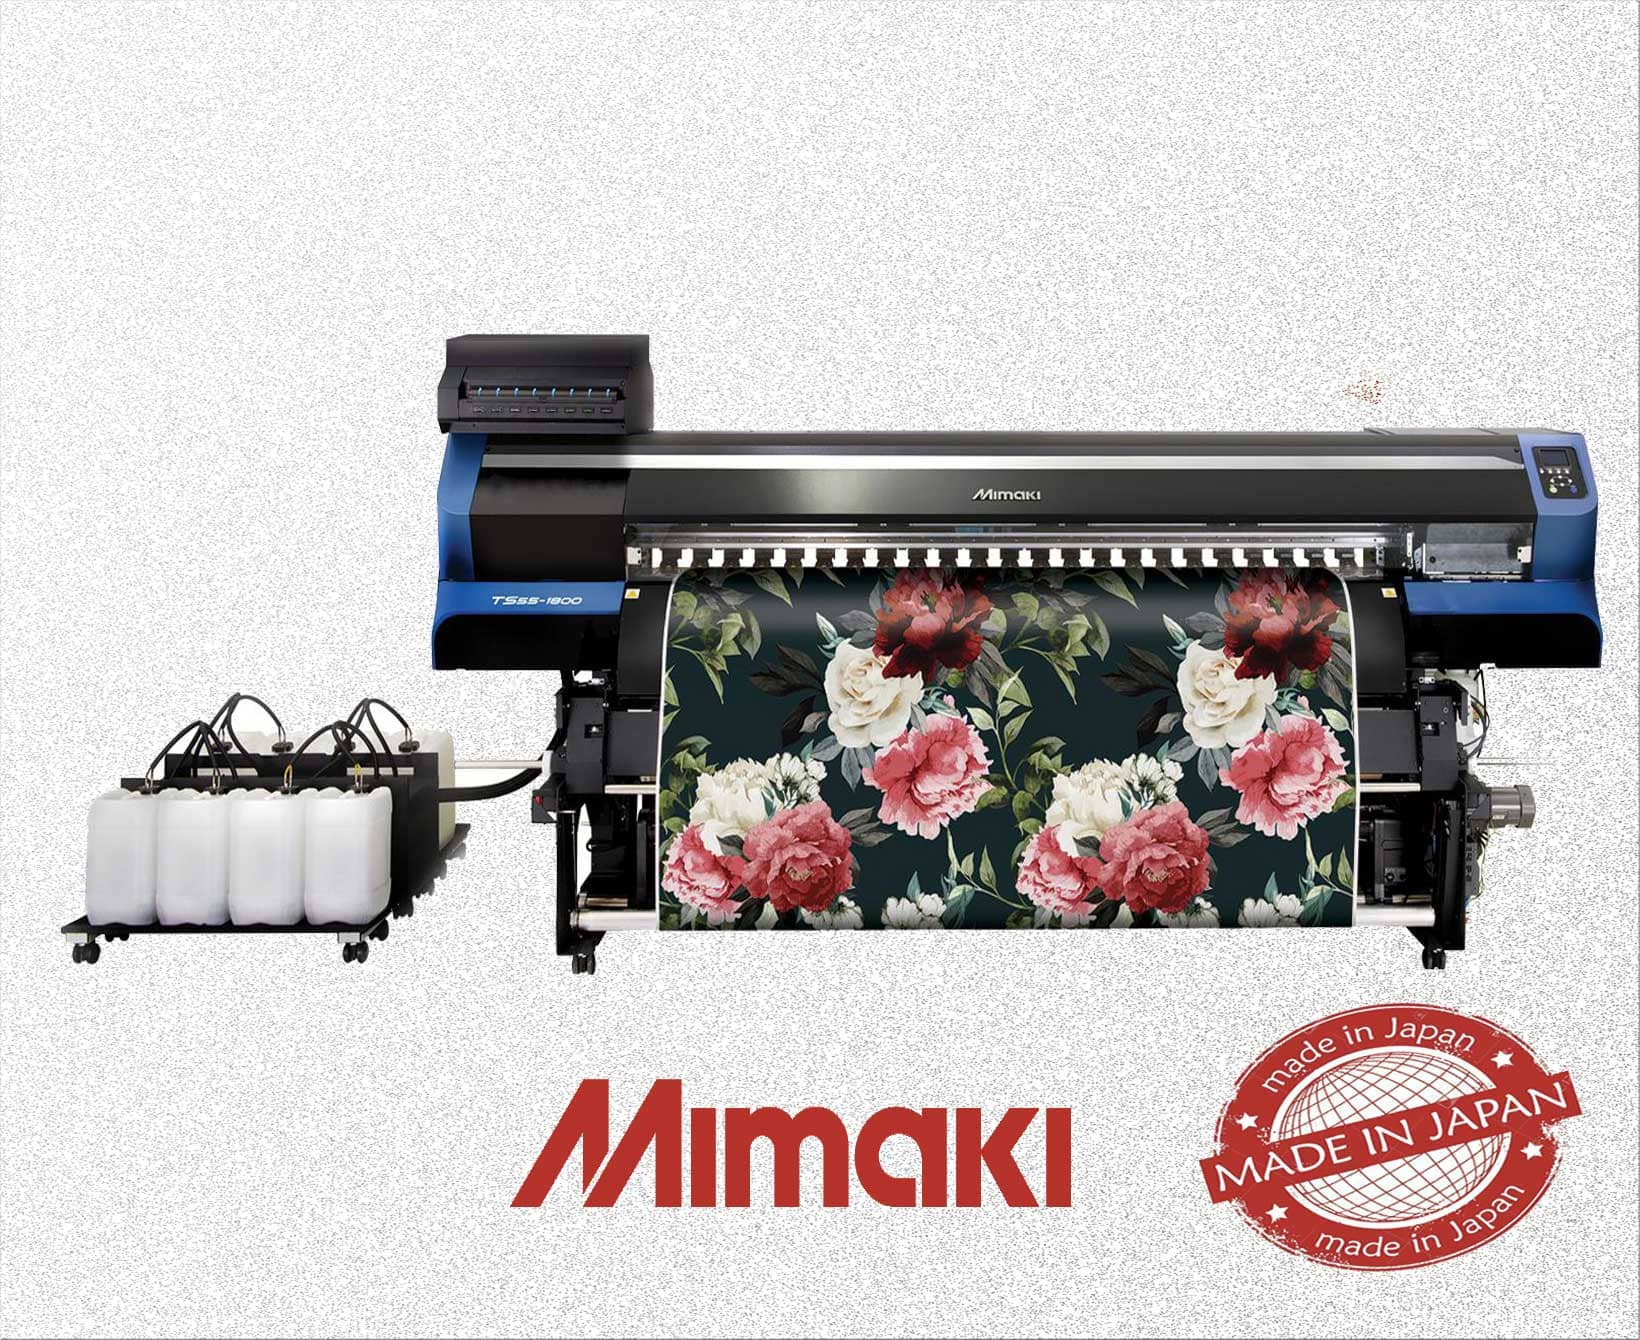 Mimaki Ts55-1800 | Digital printing machine